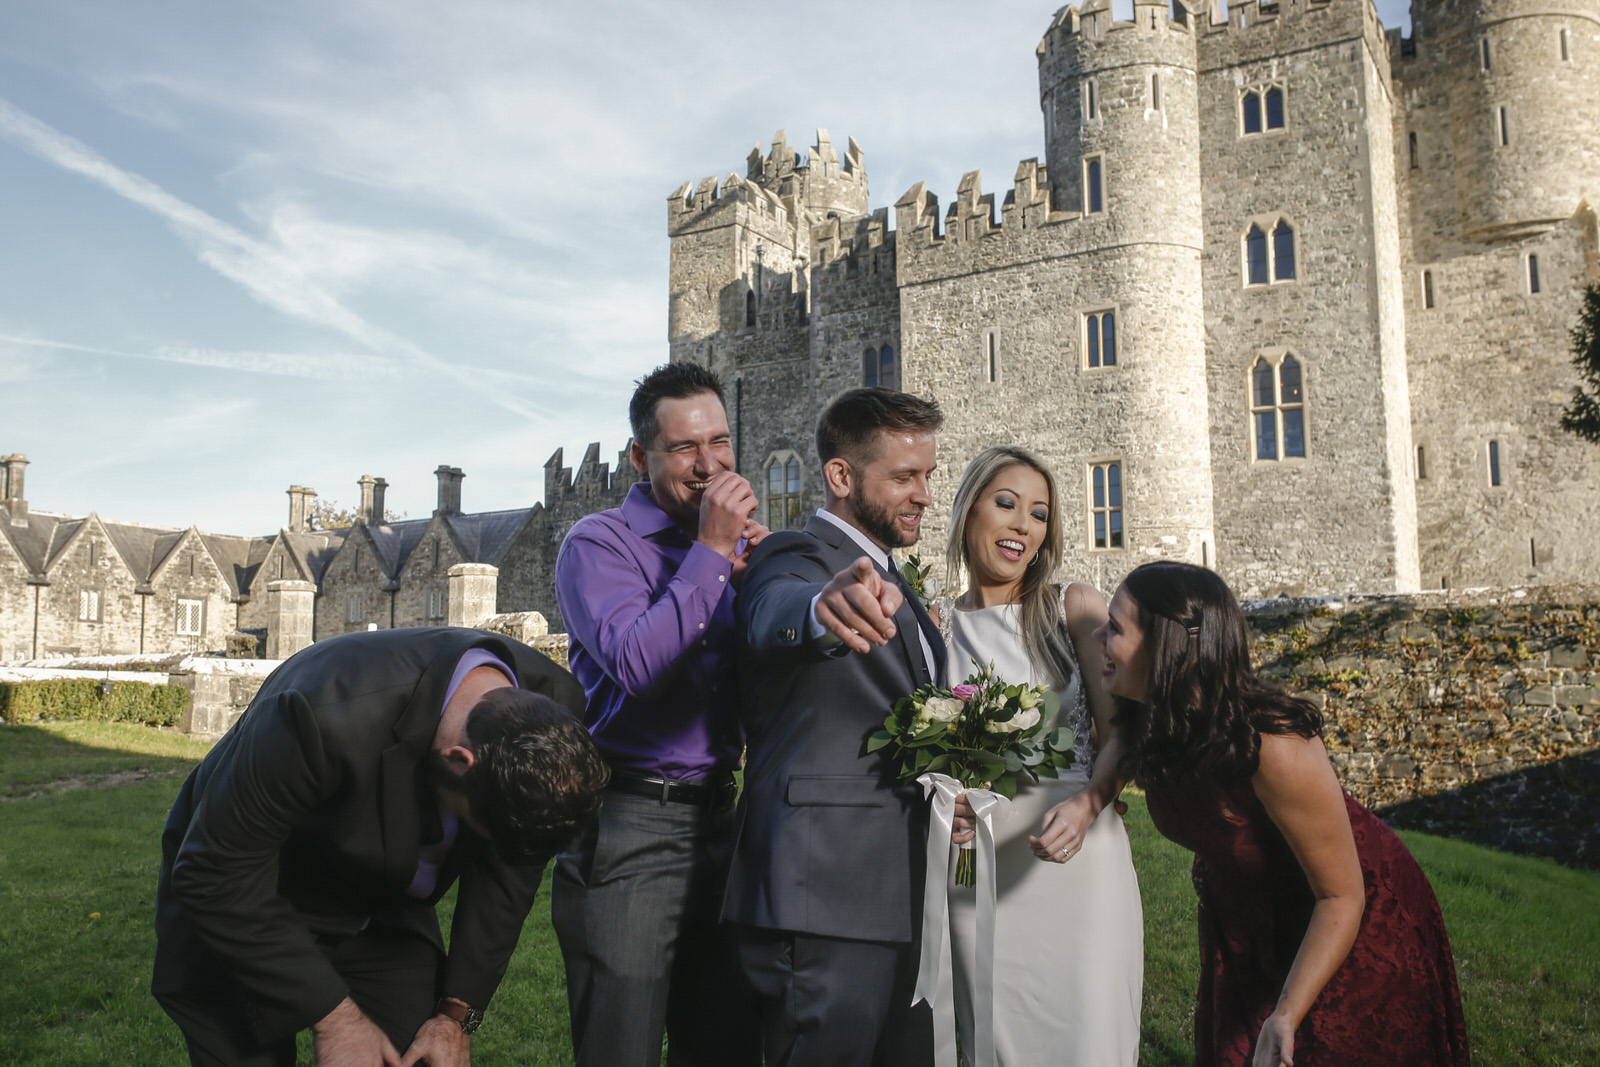 waterford_faithlegg_wedding_photographer_goldenmonentsweddingphotography_a562.jpg